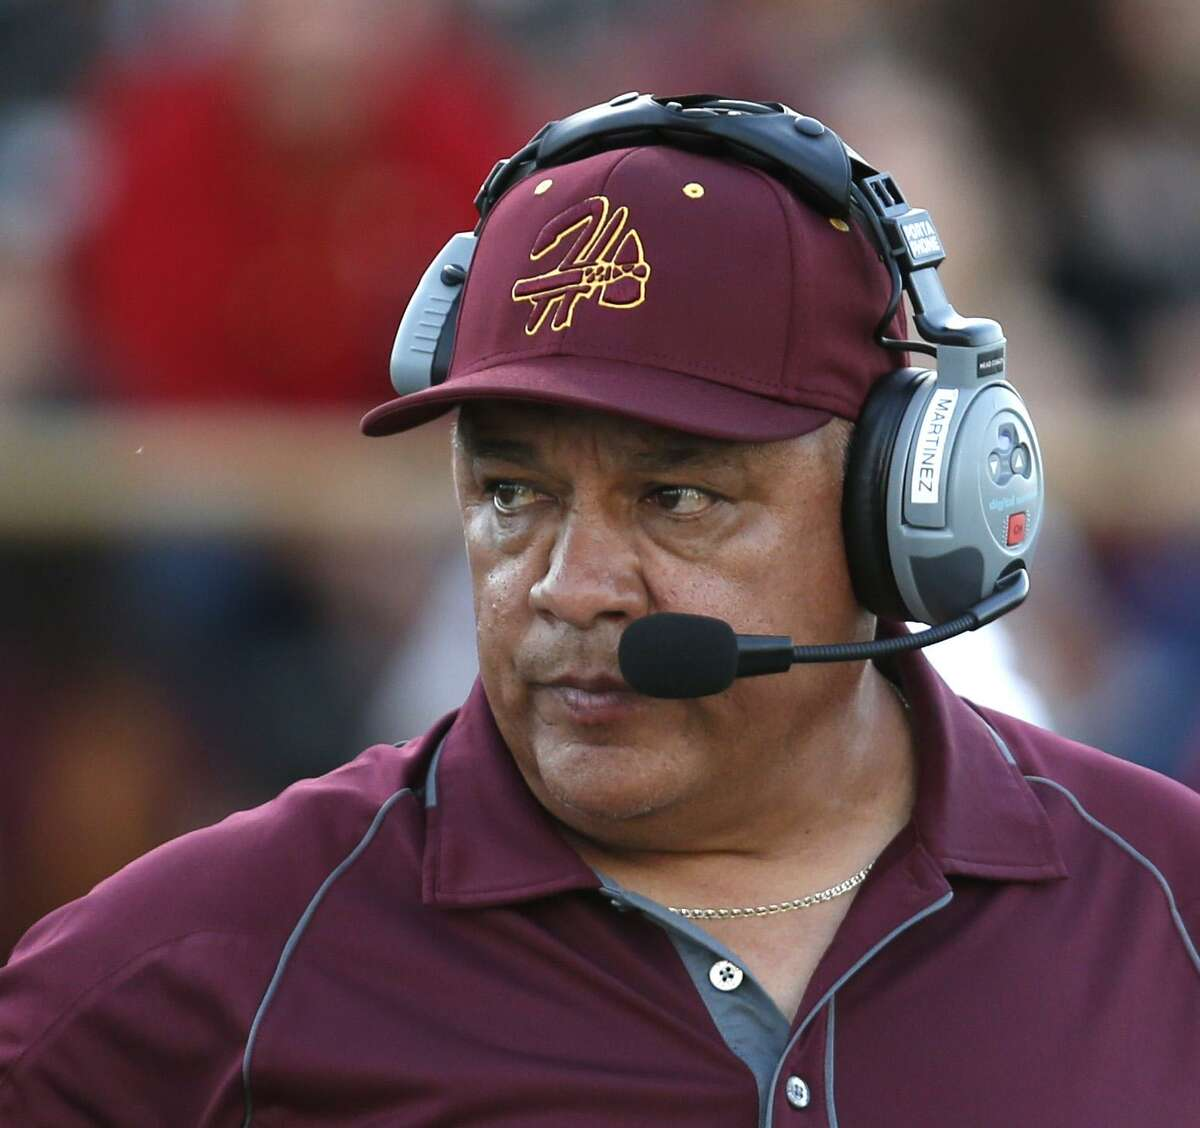 Harlandale head coach Isaac Martinez watches his team last fall. He has been named Harlandale ISD athletic director, replacing Rudy de los Santos who had 21 years in the position.